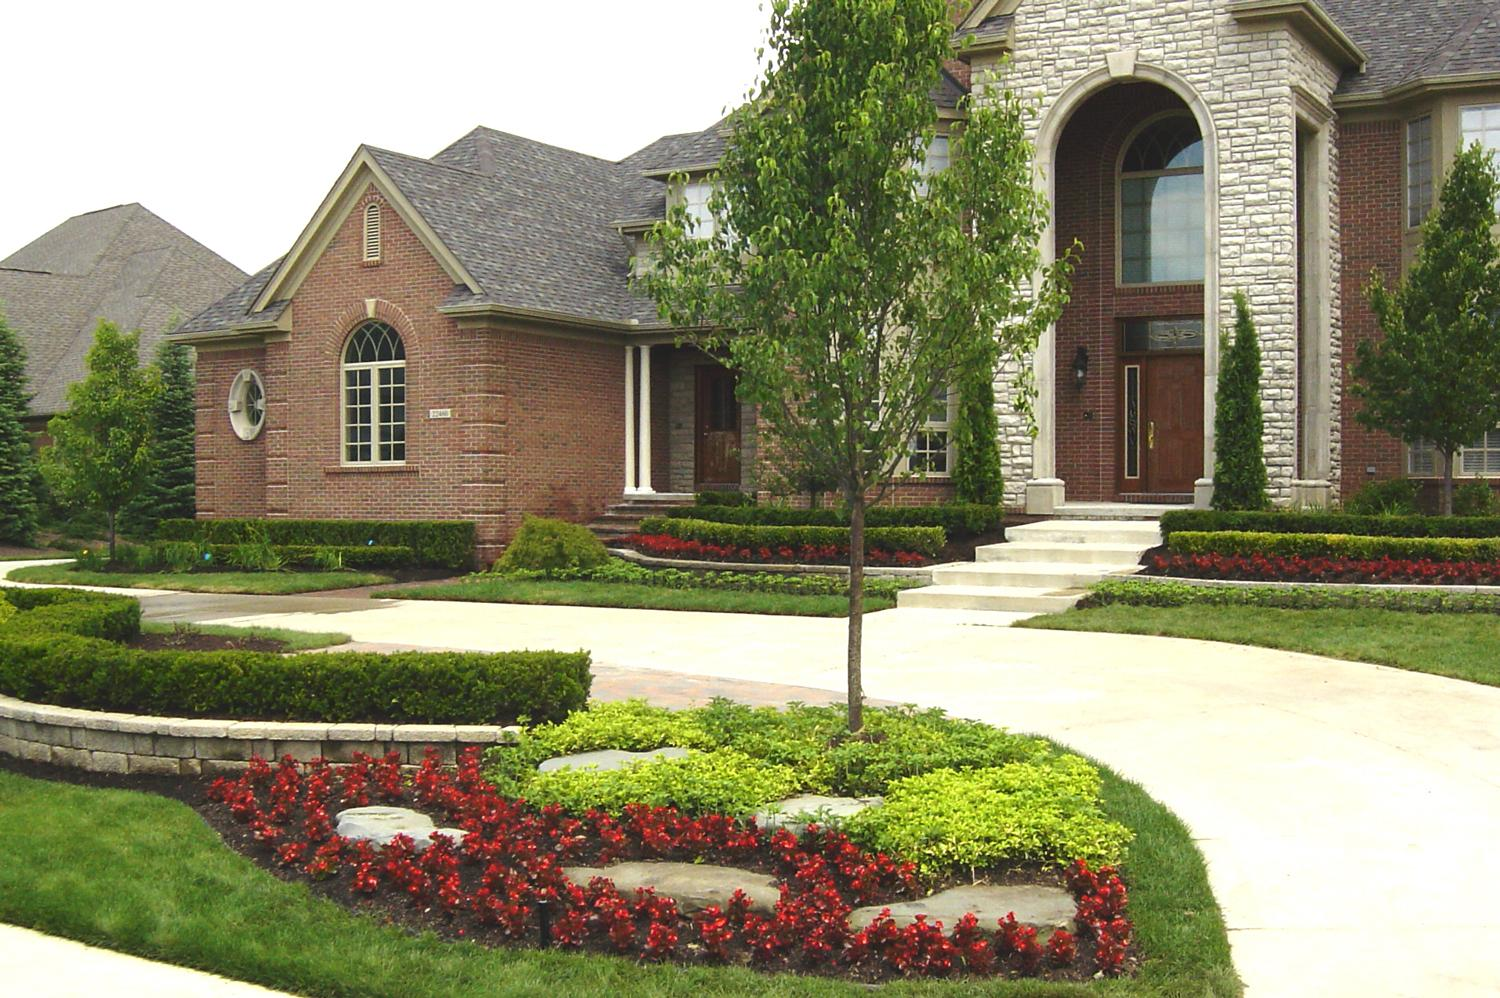 Home Front Yard Landscaping Ideas 1500 x 998